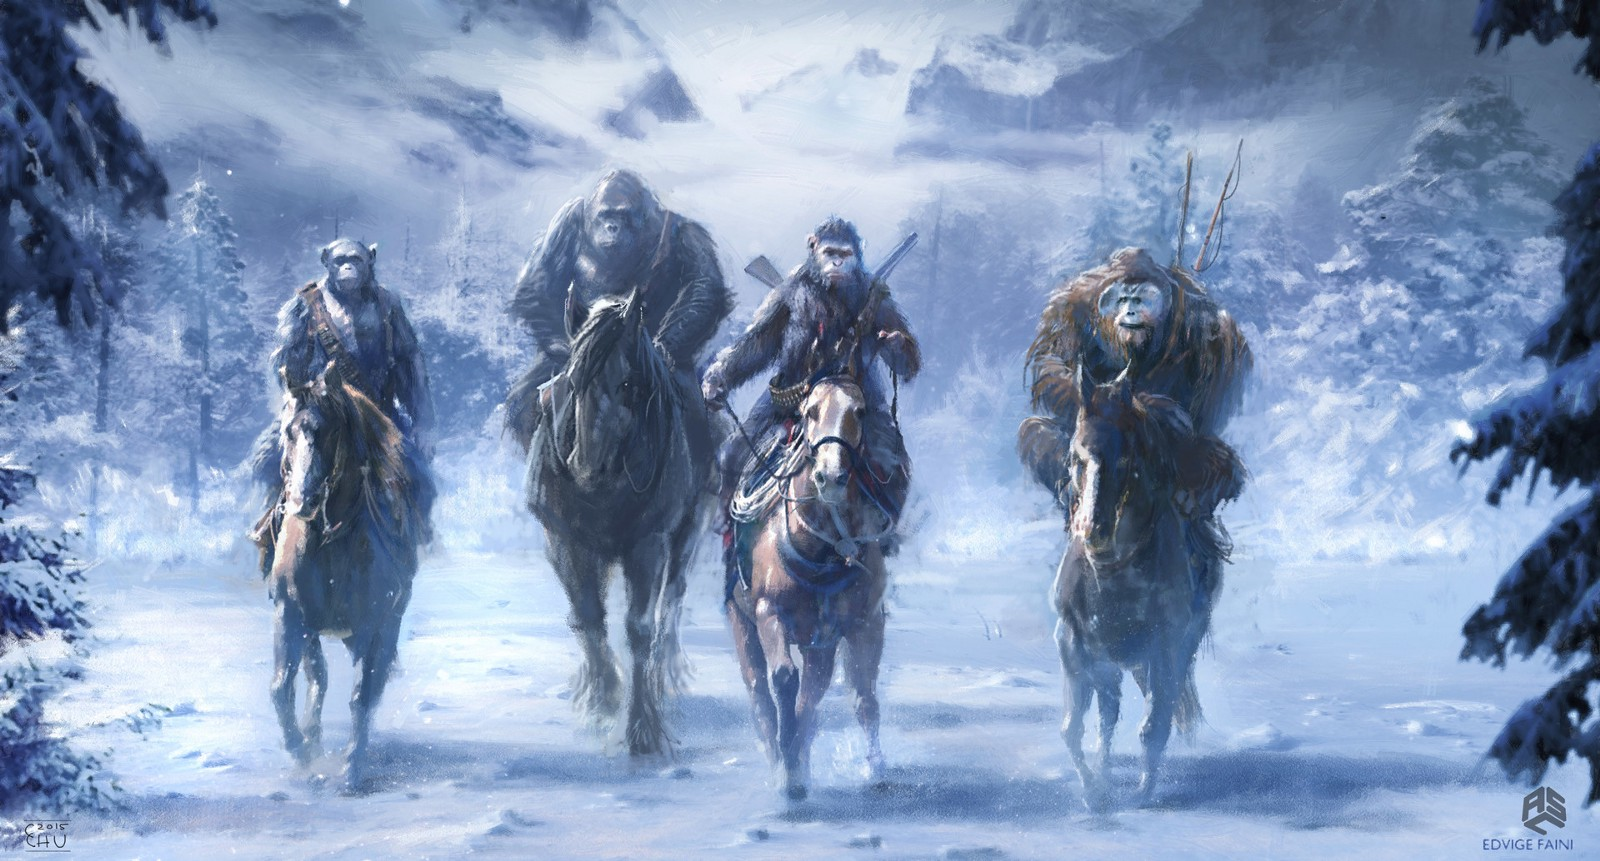 war for the planet of the apes concept art illustration collection